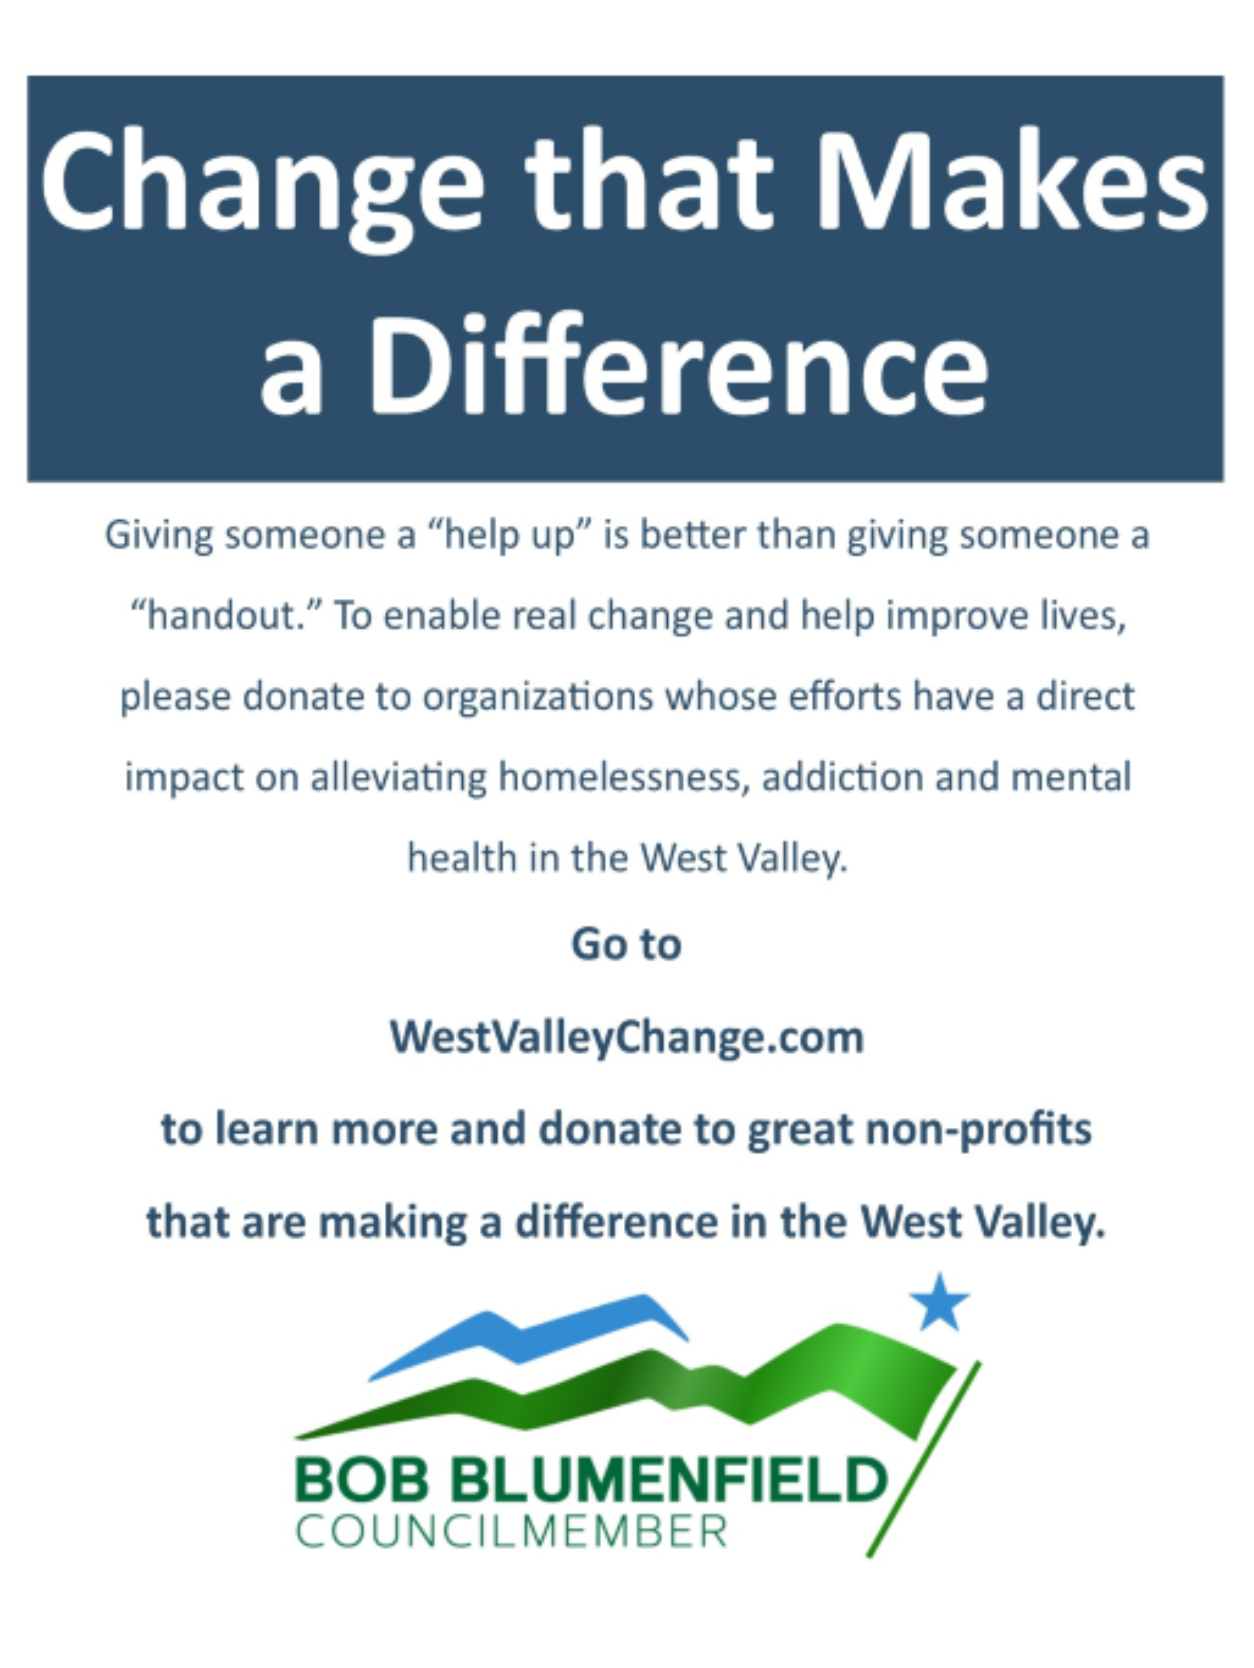 Change_that_makes_a_difference.png